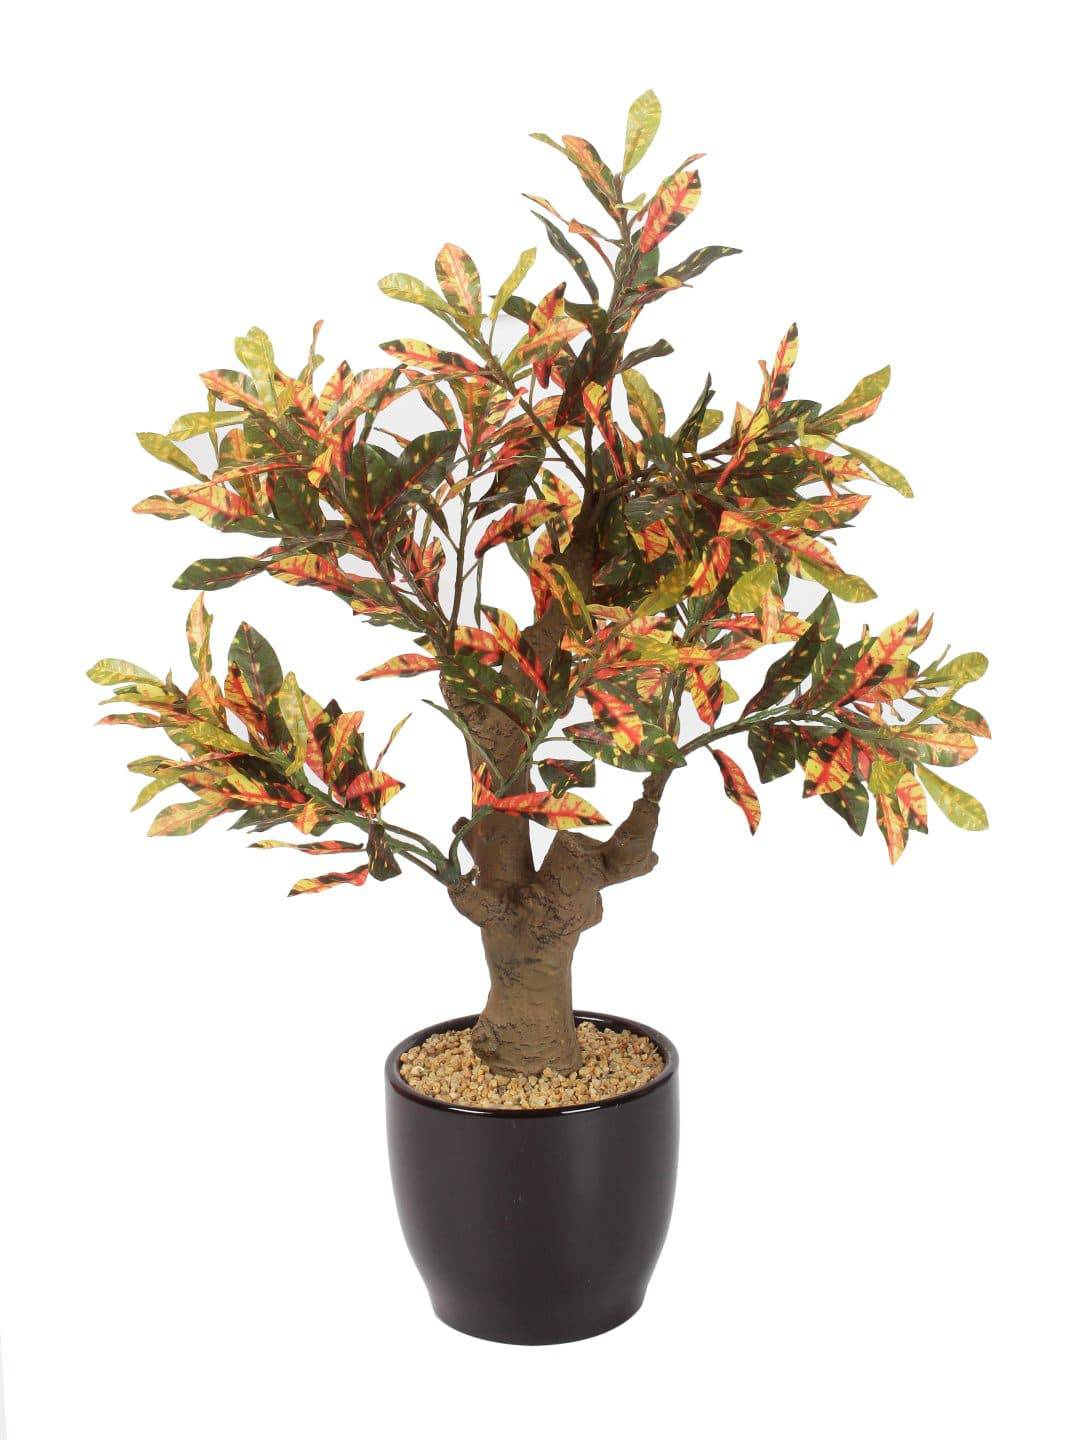 PolliNation Stunning Artificial Red Croton Bonsai with Black Ceramic Pot for Home,Office, Restaurant, Hotel, Party, Balcony, Garden Décor, Indoor (Pack of 1, 15 Inch) - Artificial Flowers & Plants - PolliNation